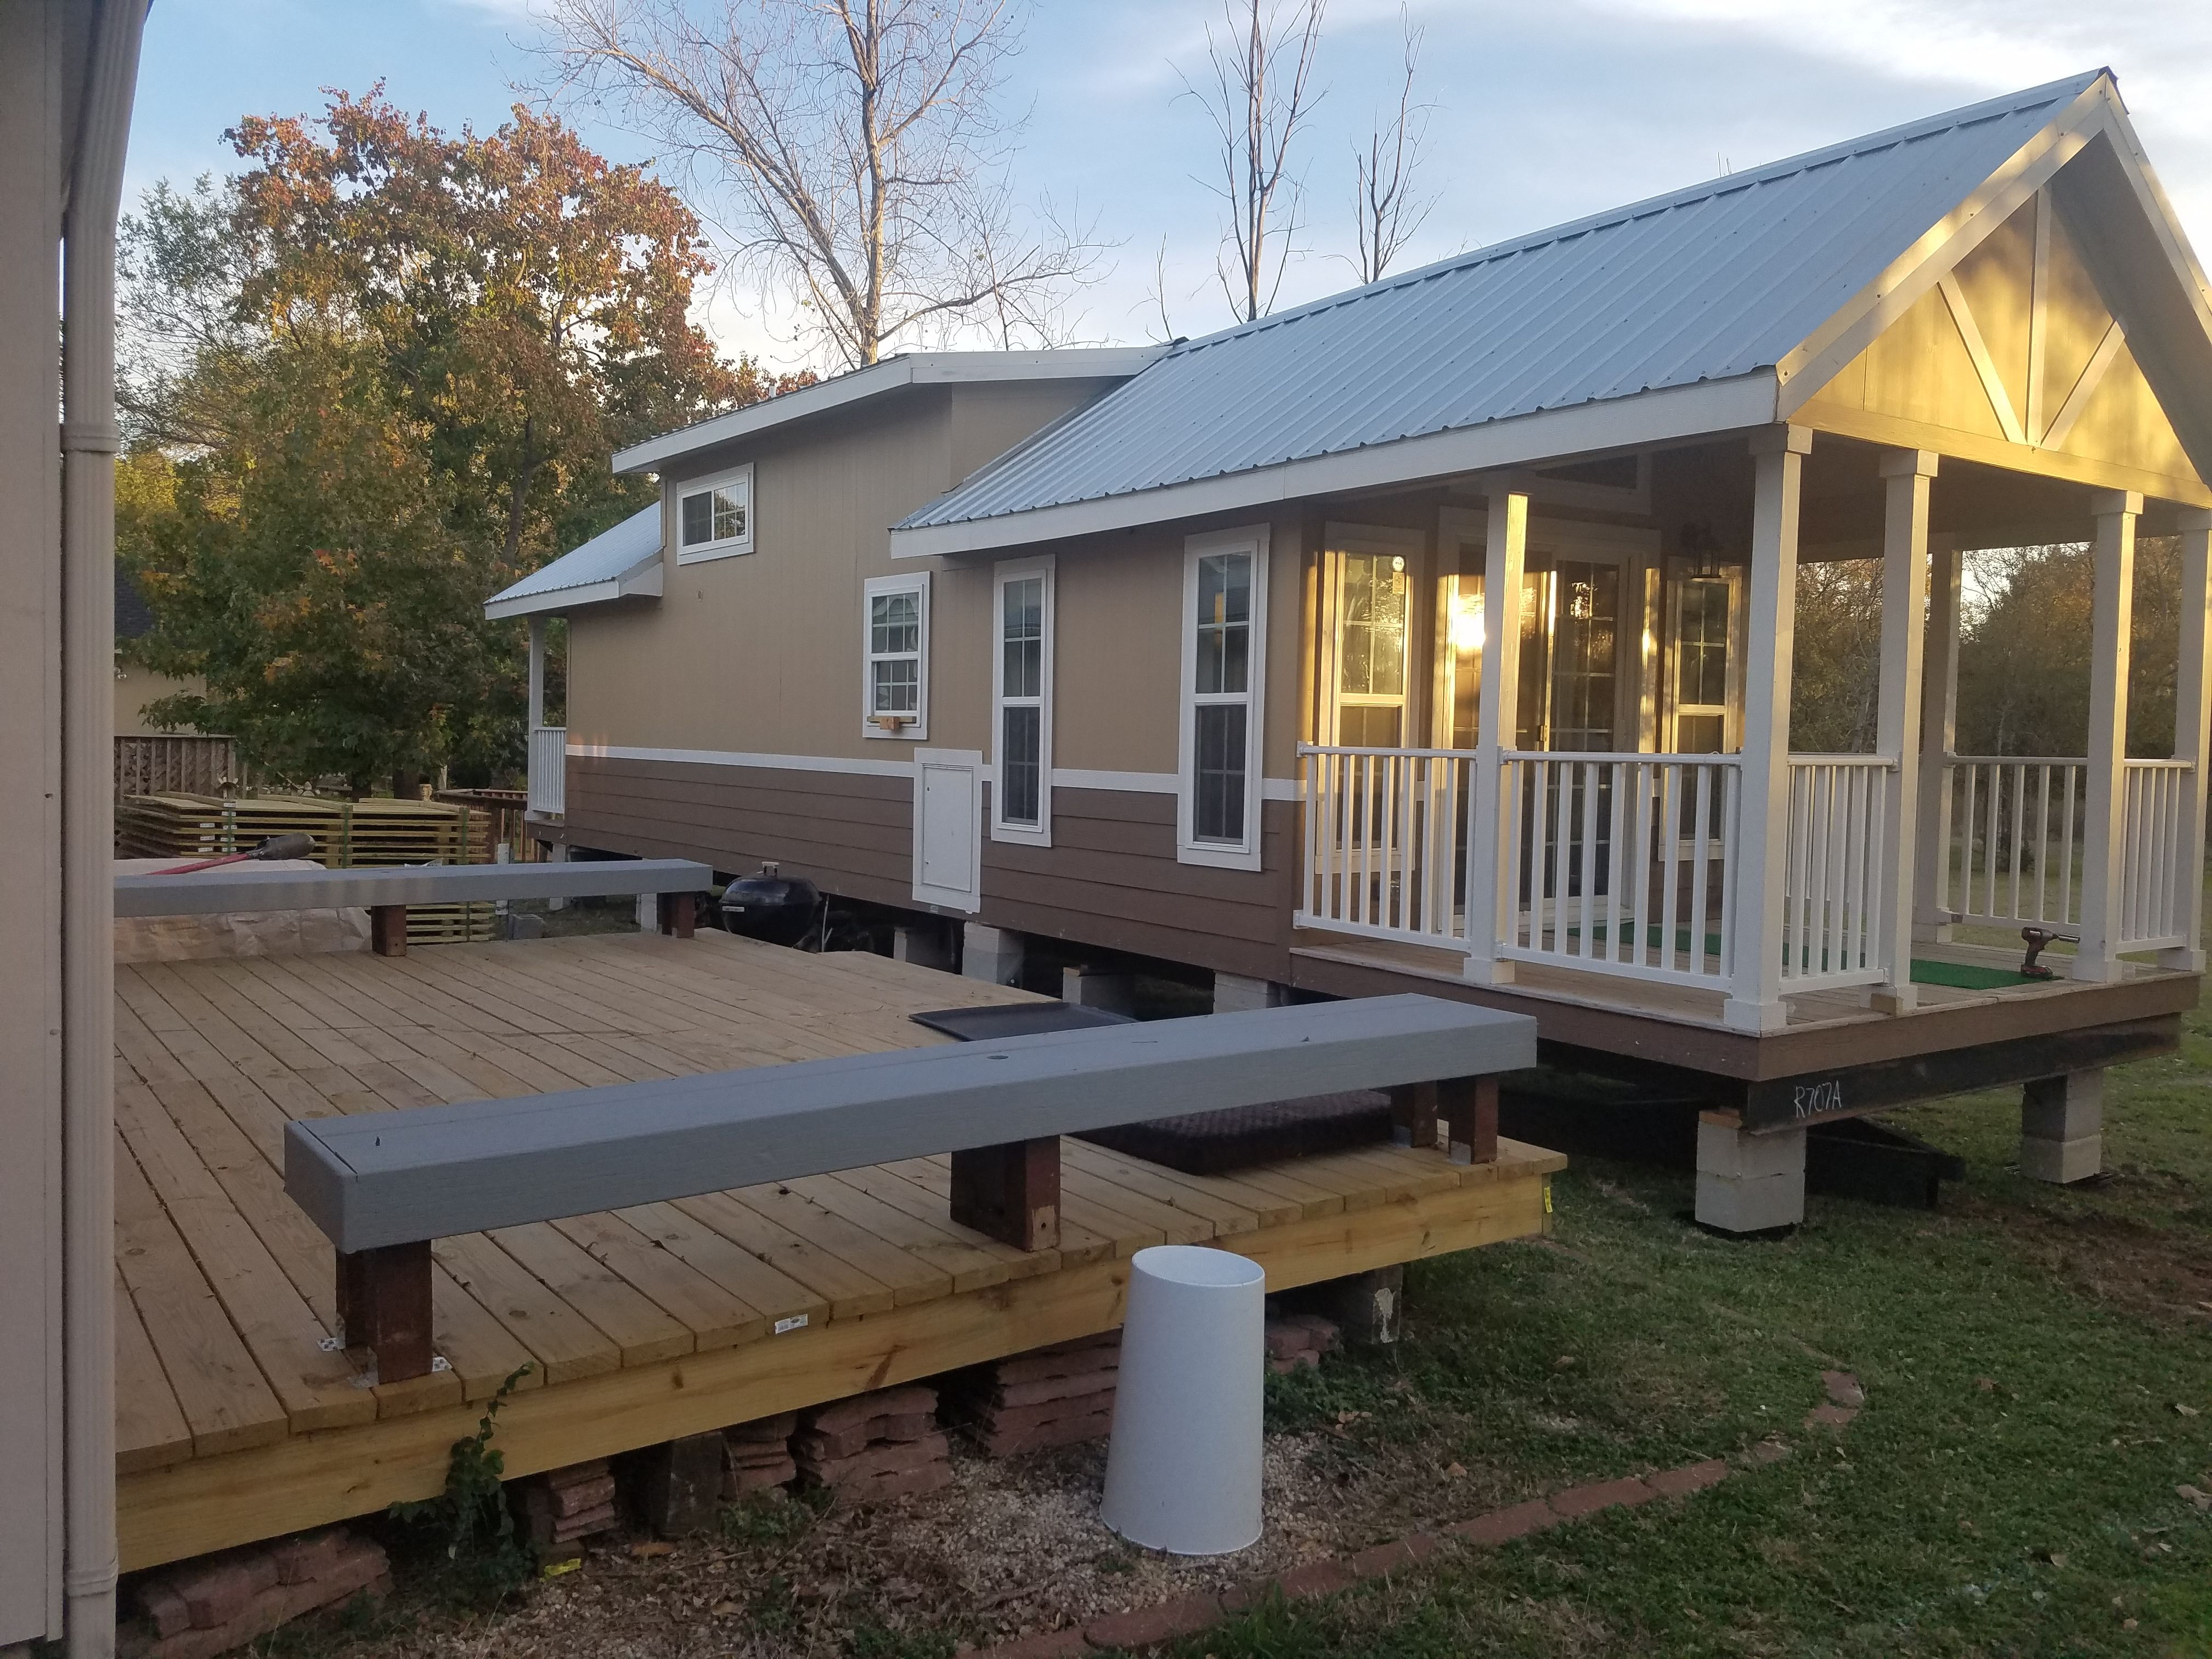 Tiny House Sales And Land Development Buyasmallhouse Com Tiny House For Rent In Austin Texas Sale House Tiny Houses For Rent Best Tiny House